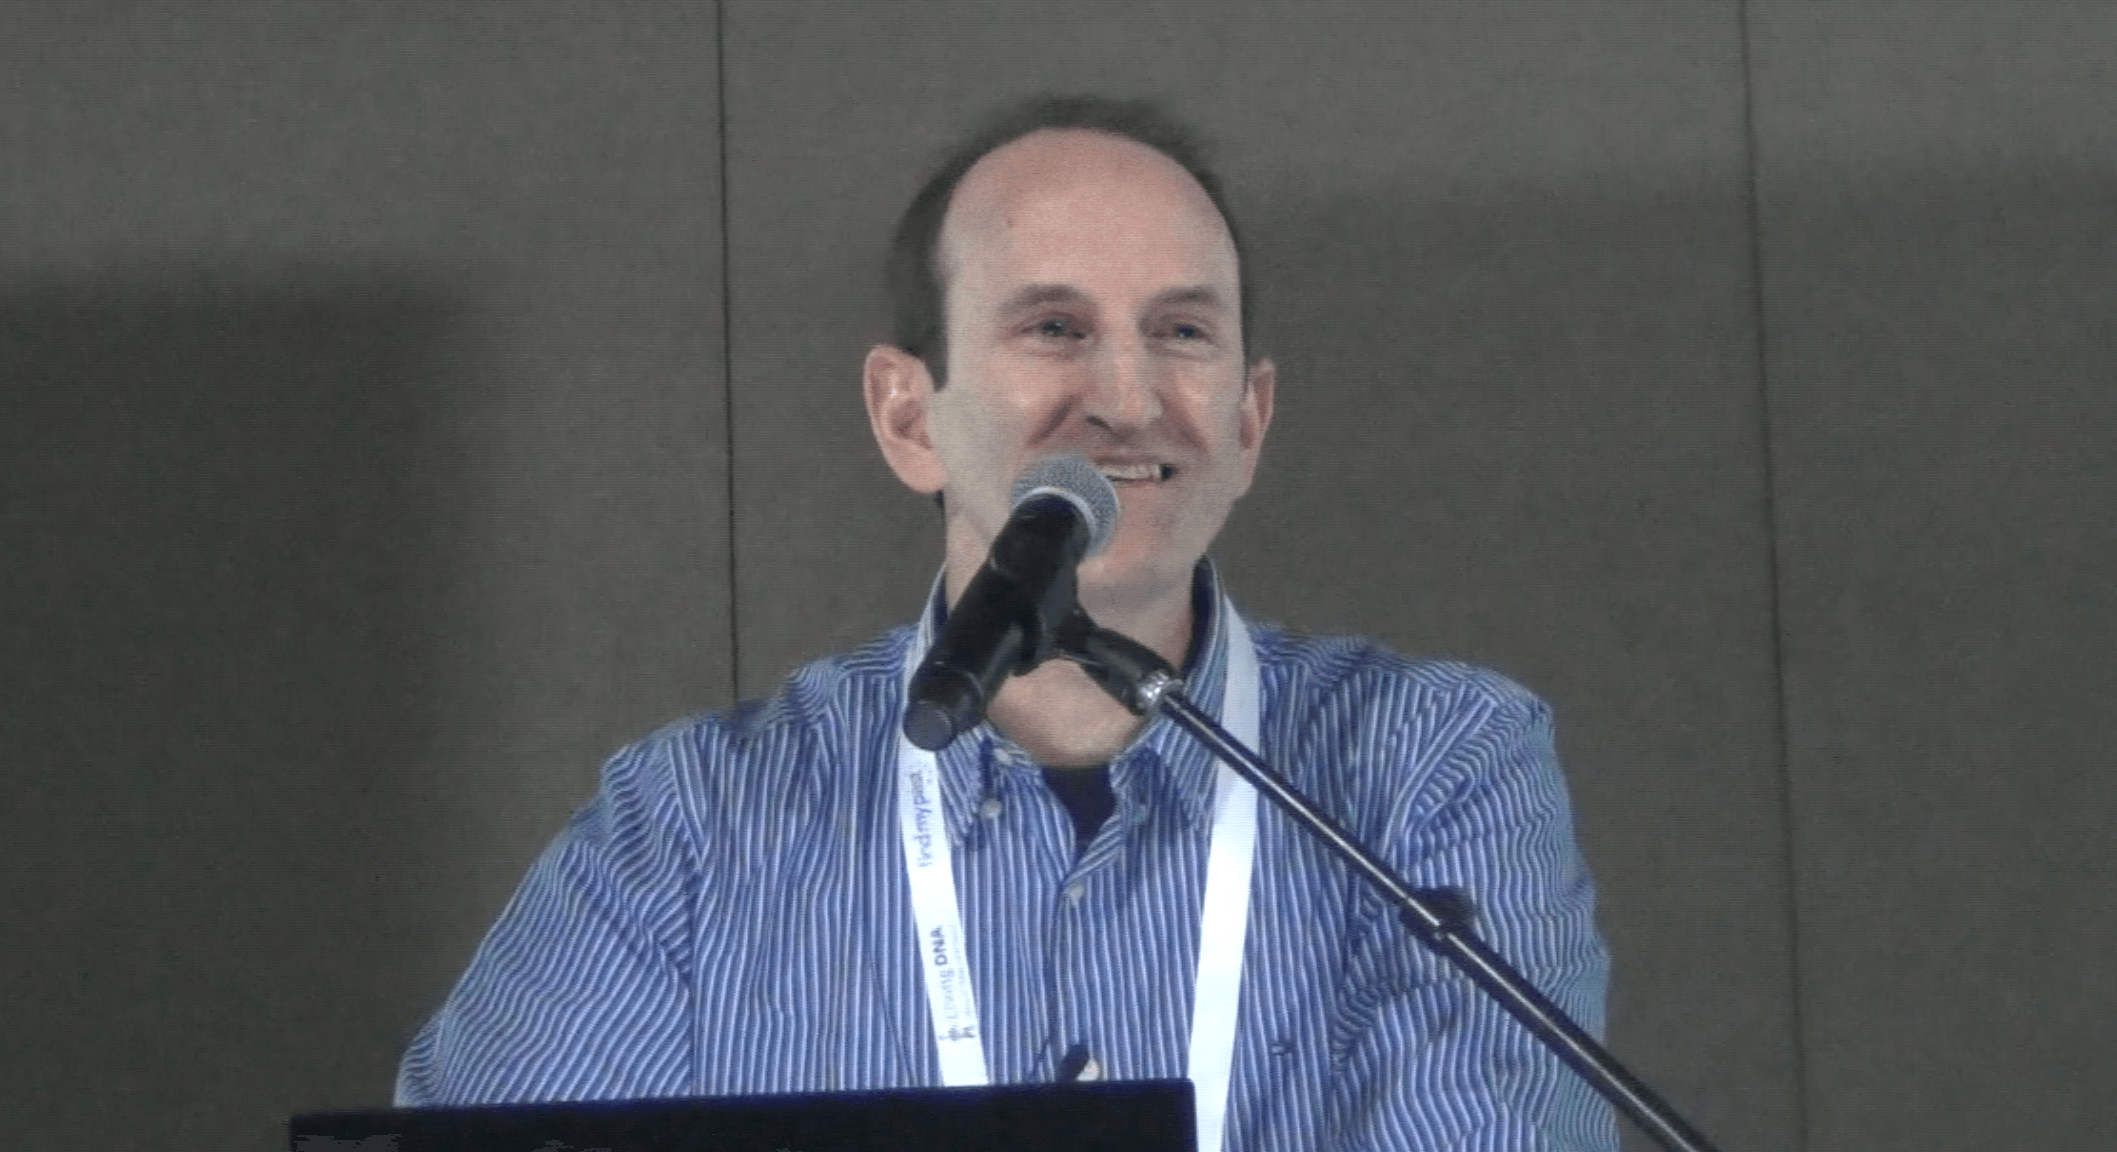 MyHeritage Founder and CEO Gilad Japhet at RootsTech 2019